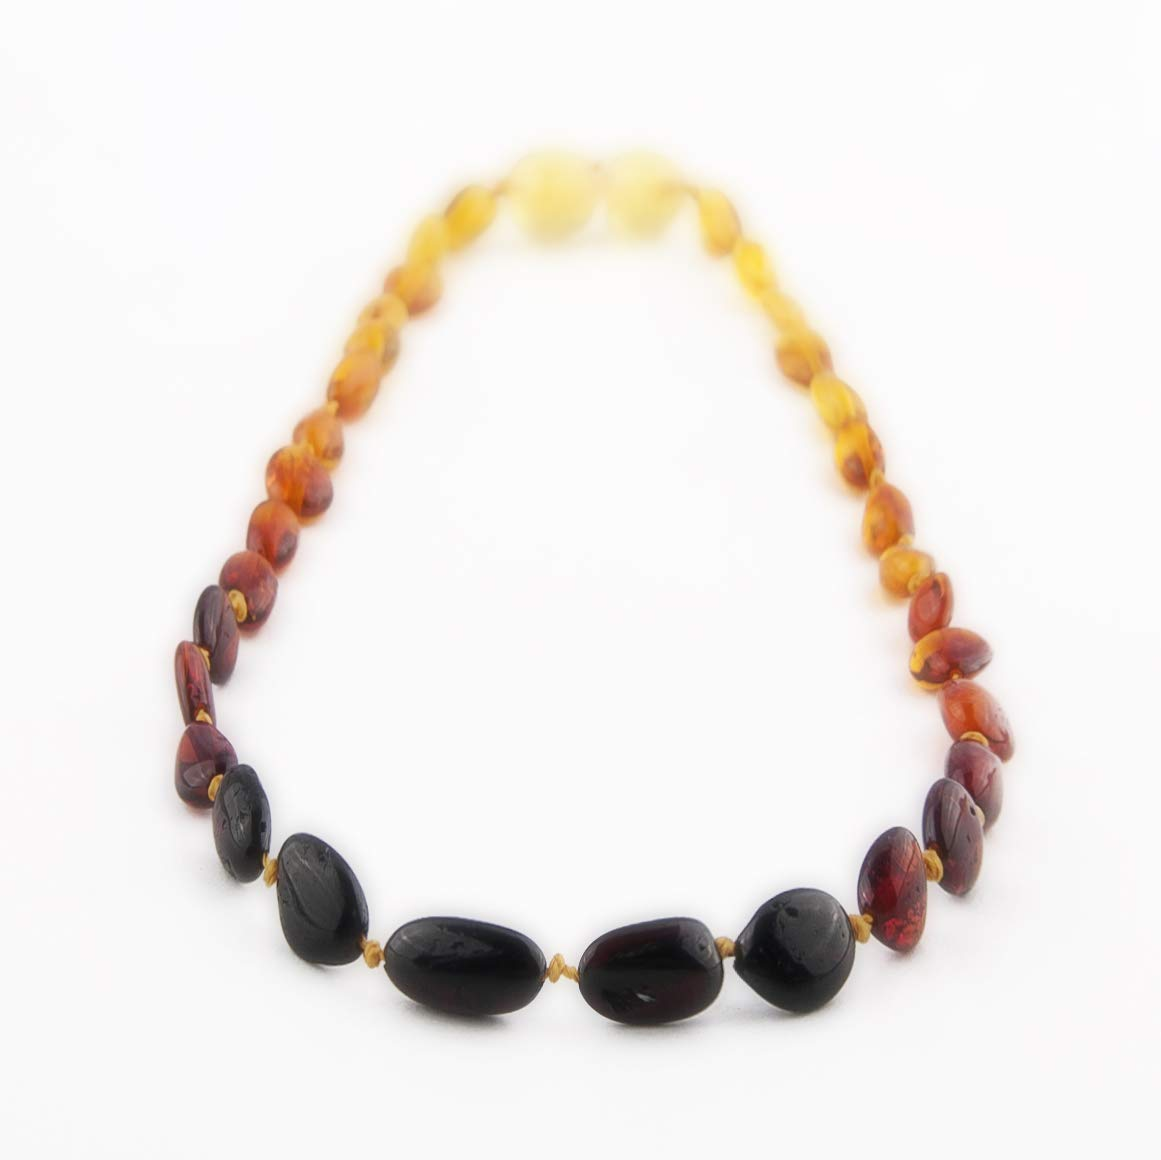 The Art of Cure Baltic Amber Necklace 17 Inch (rainbow bean) - Anti-inflammatory by The Art of Cure